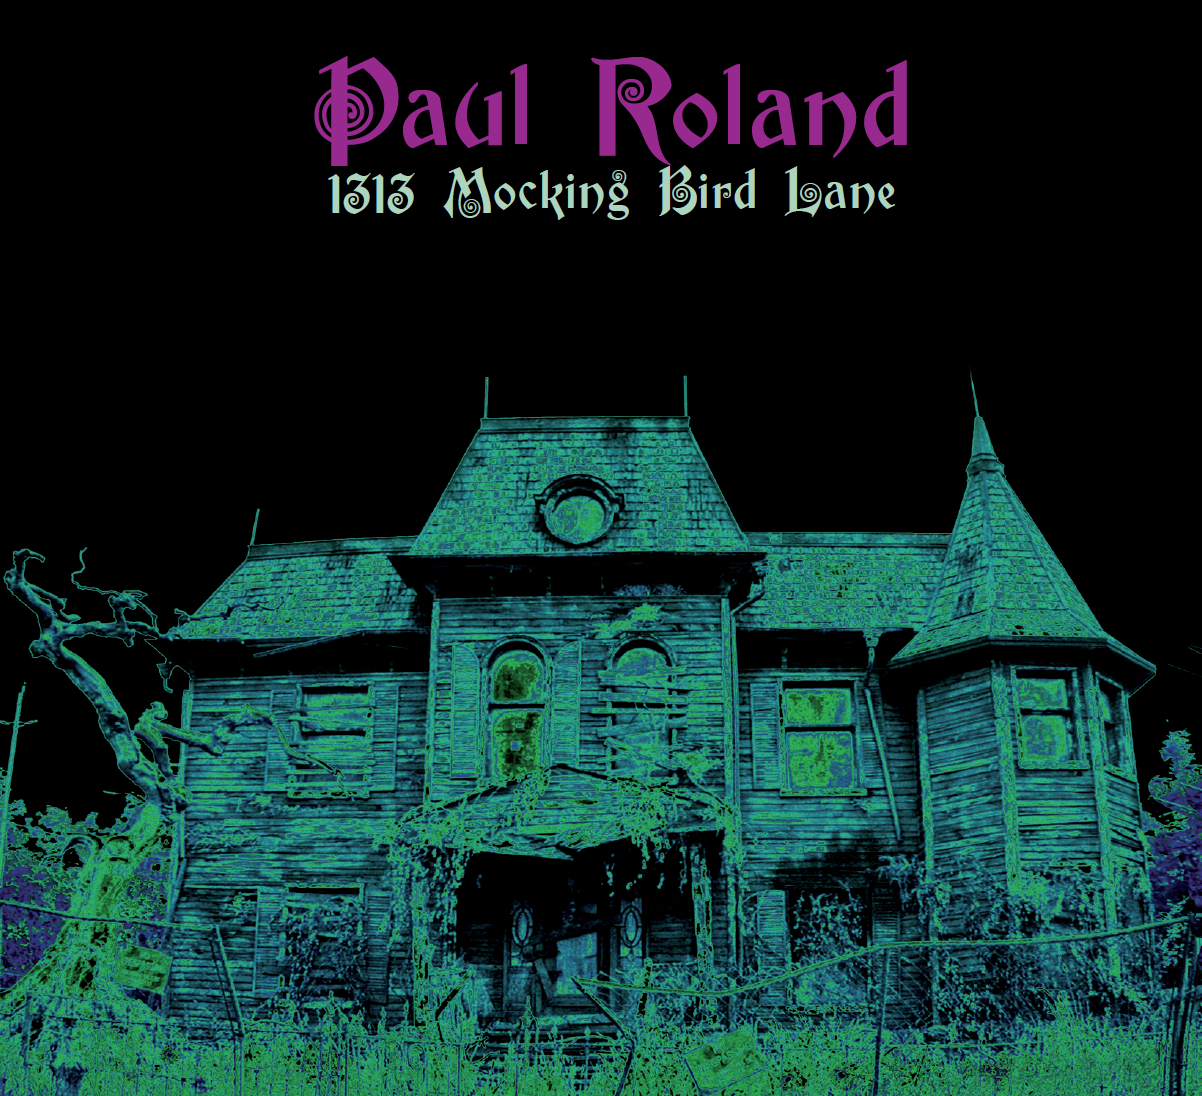 Paul Roland - 1313 Mocking Bird Lane CD